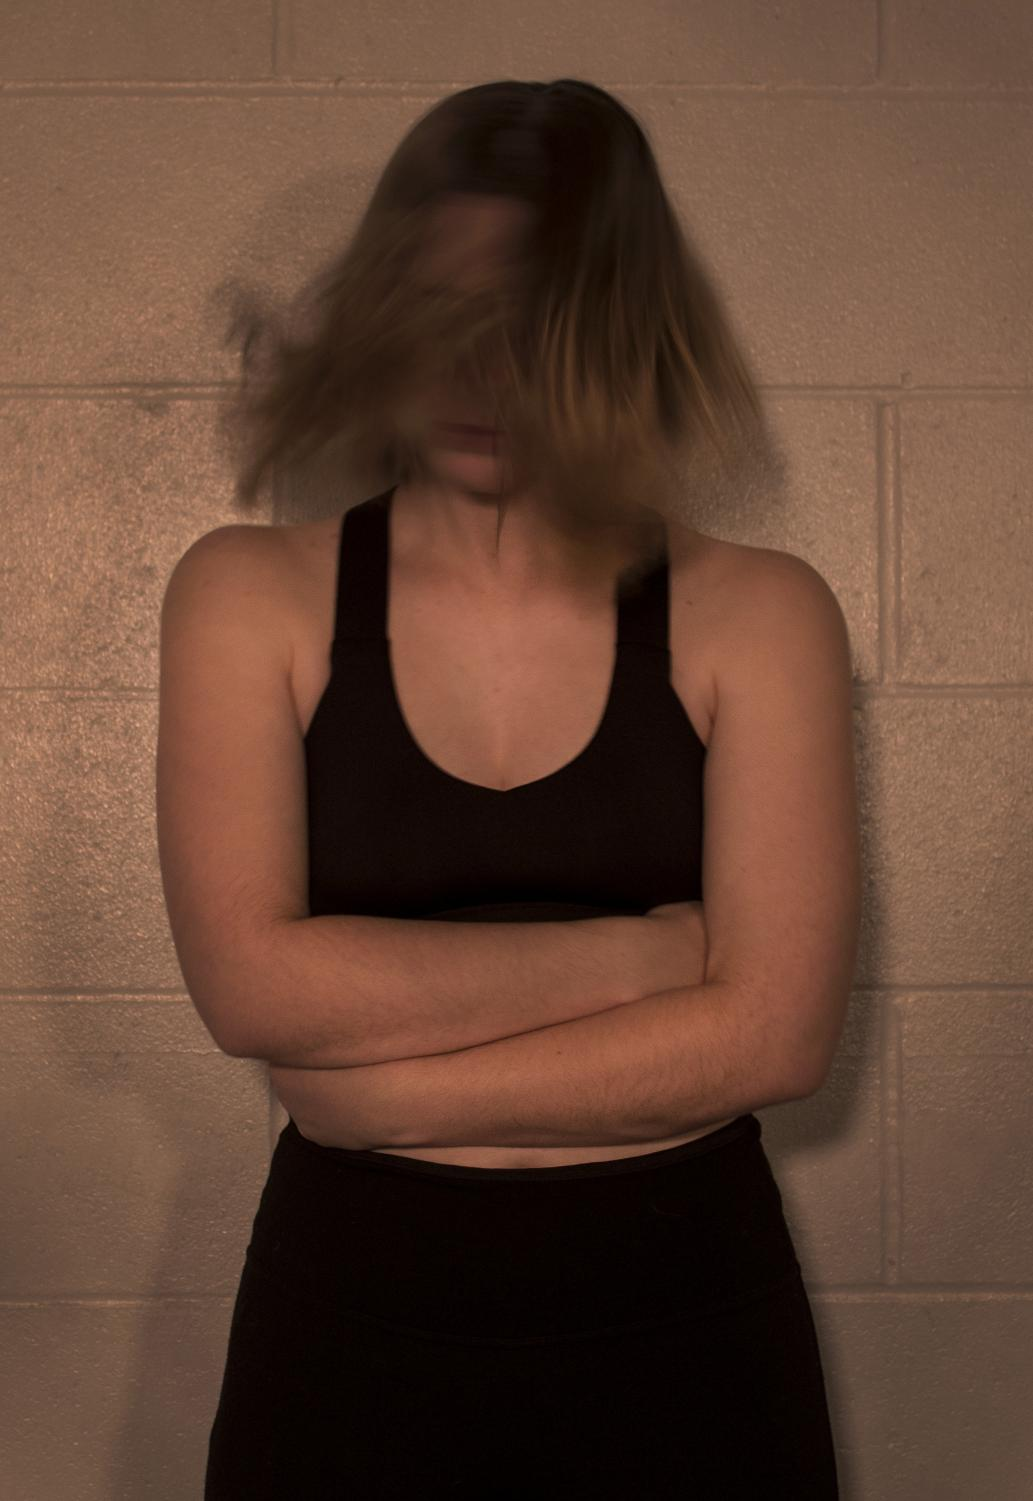 Lanie Sanders thrashes her head back and forth, portraying the anxiety inflicted by her eating disorder.